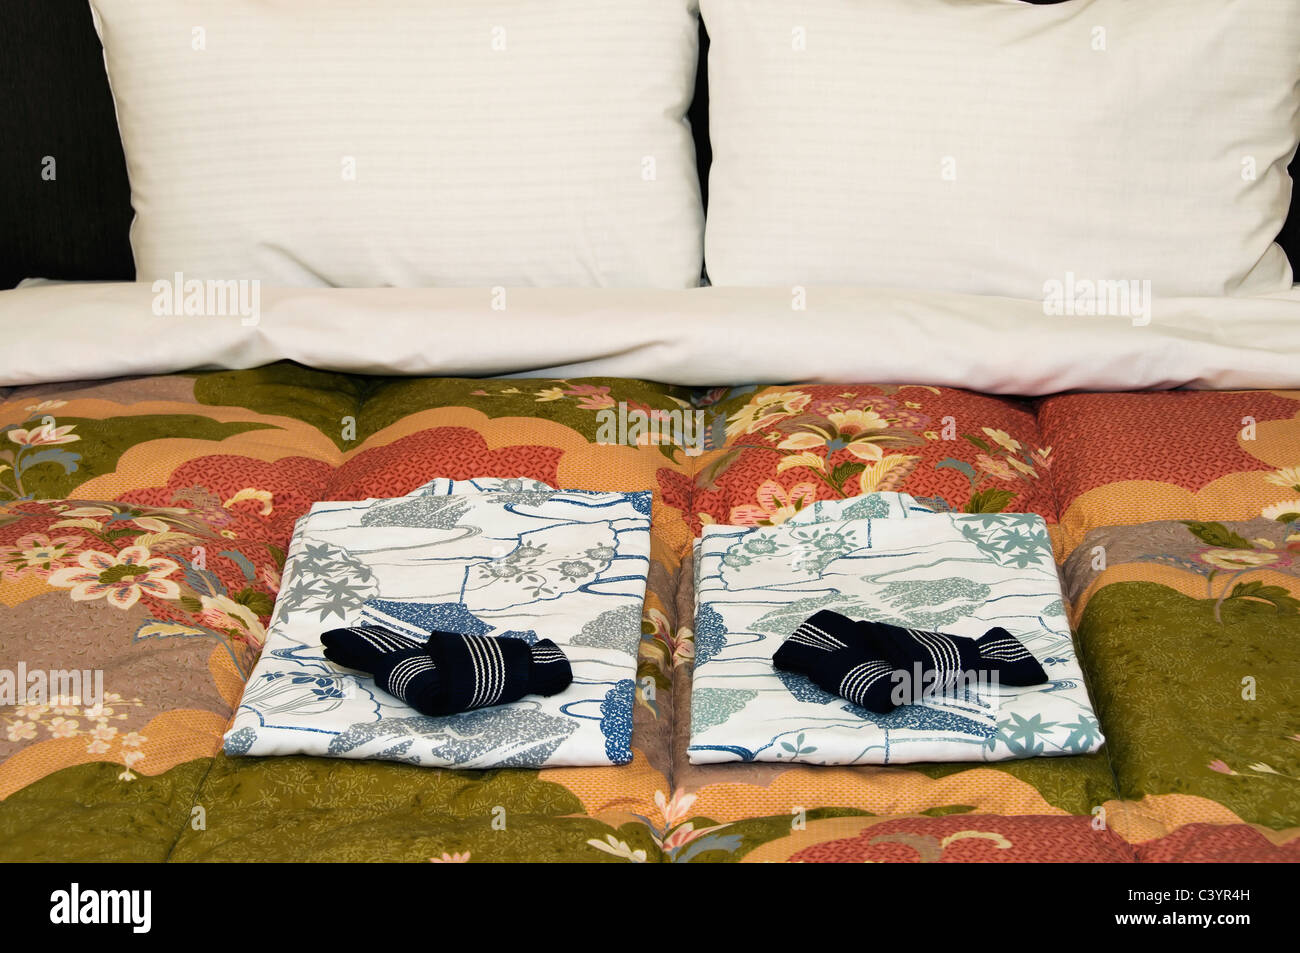 Matching cotton kimonos are placed on the bed for the comfort of guests. - Stock Image